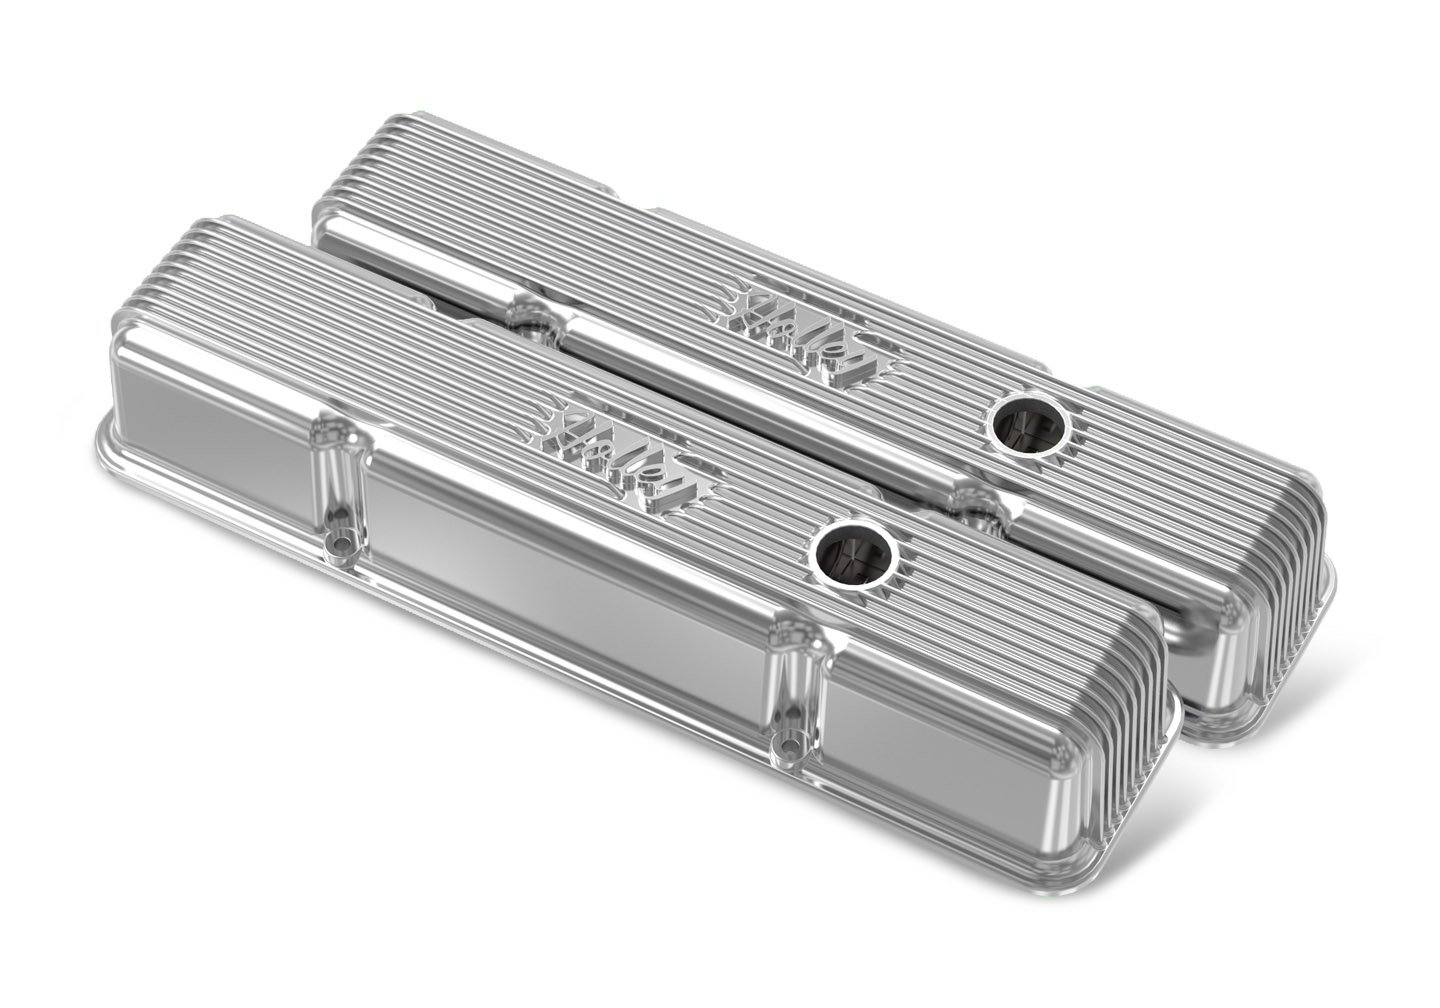 SBC Vintage Series Finned Valve Covers - Polished Finish